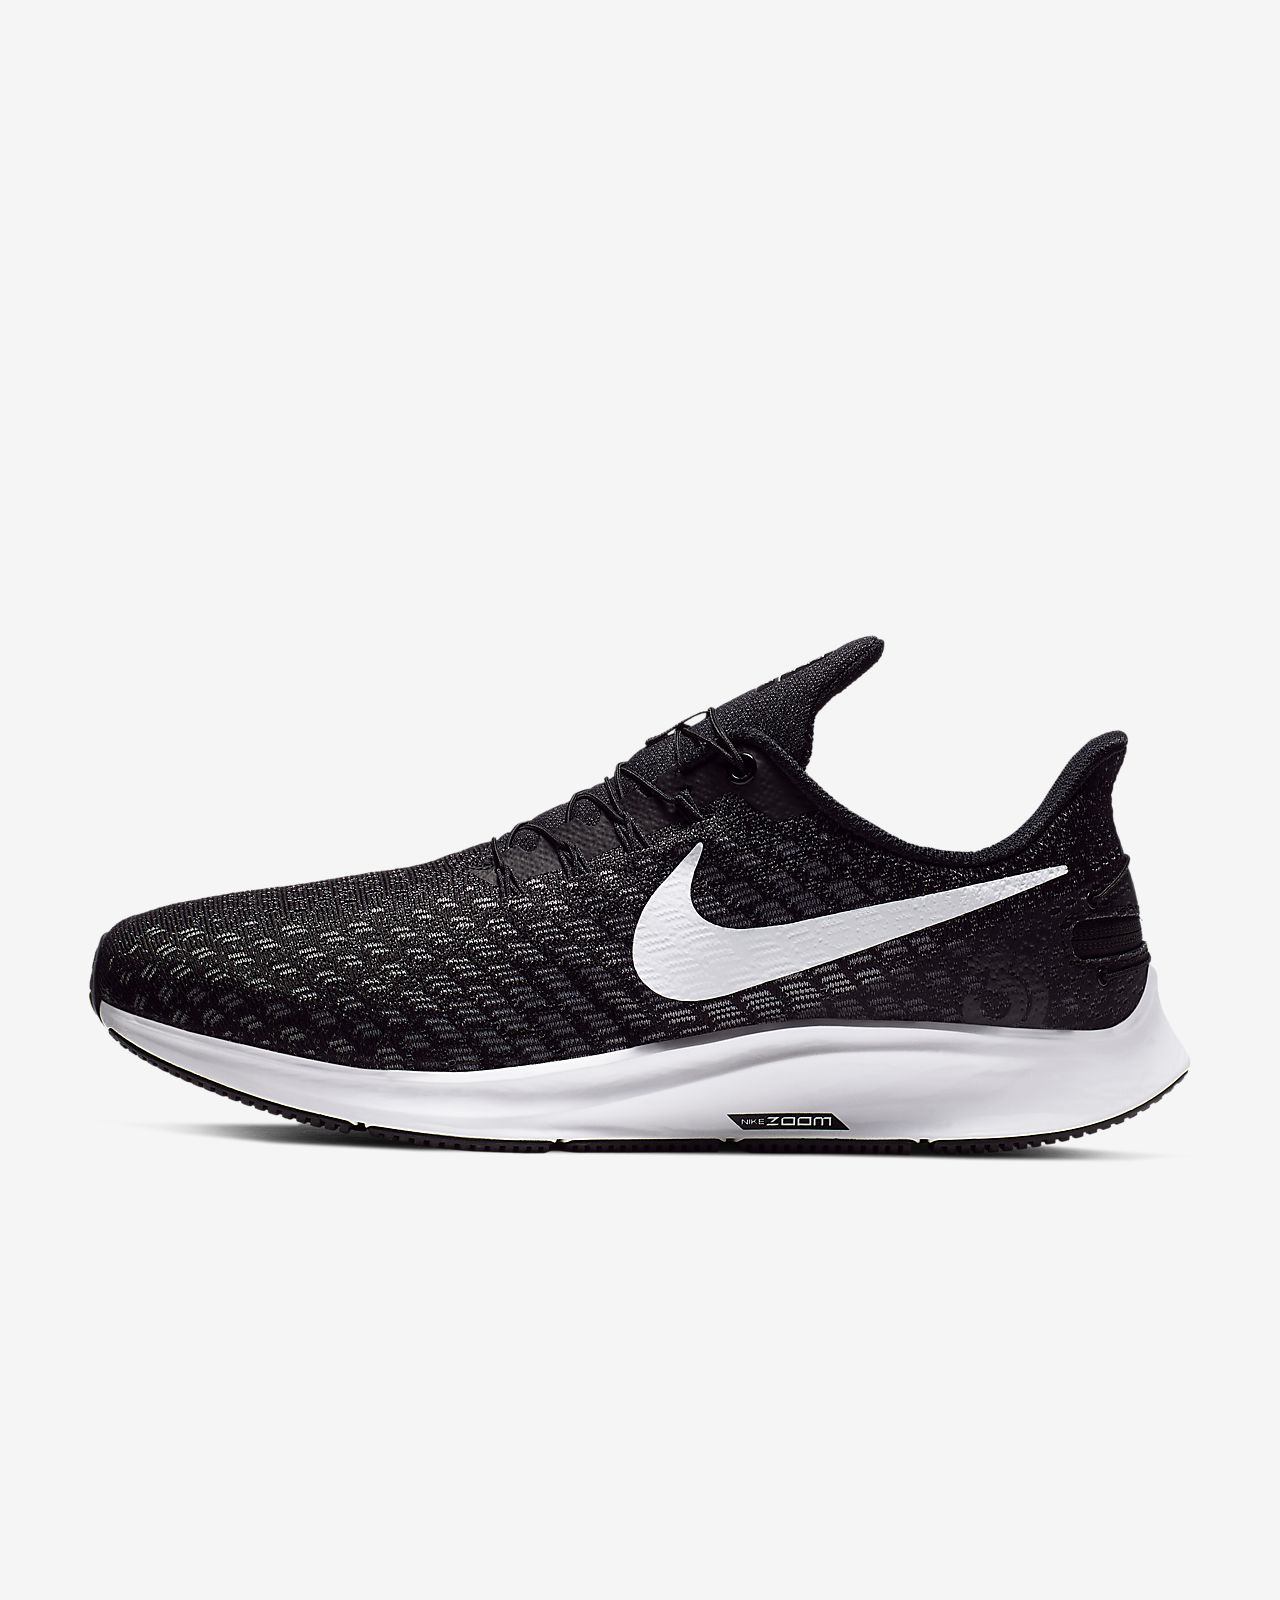 Chaussure de running Nike Air Zoom Pegasus 35 FlyEase 4E pour Homme